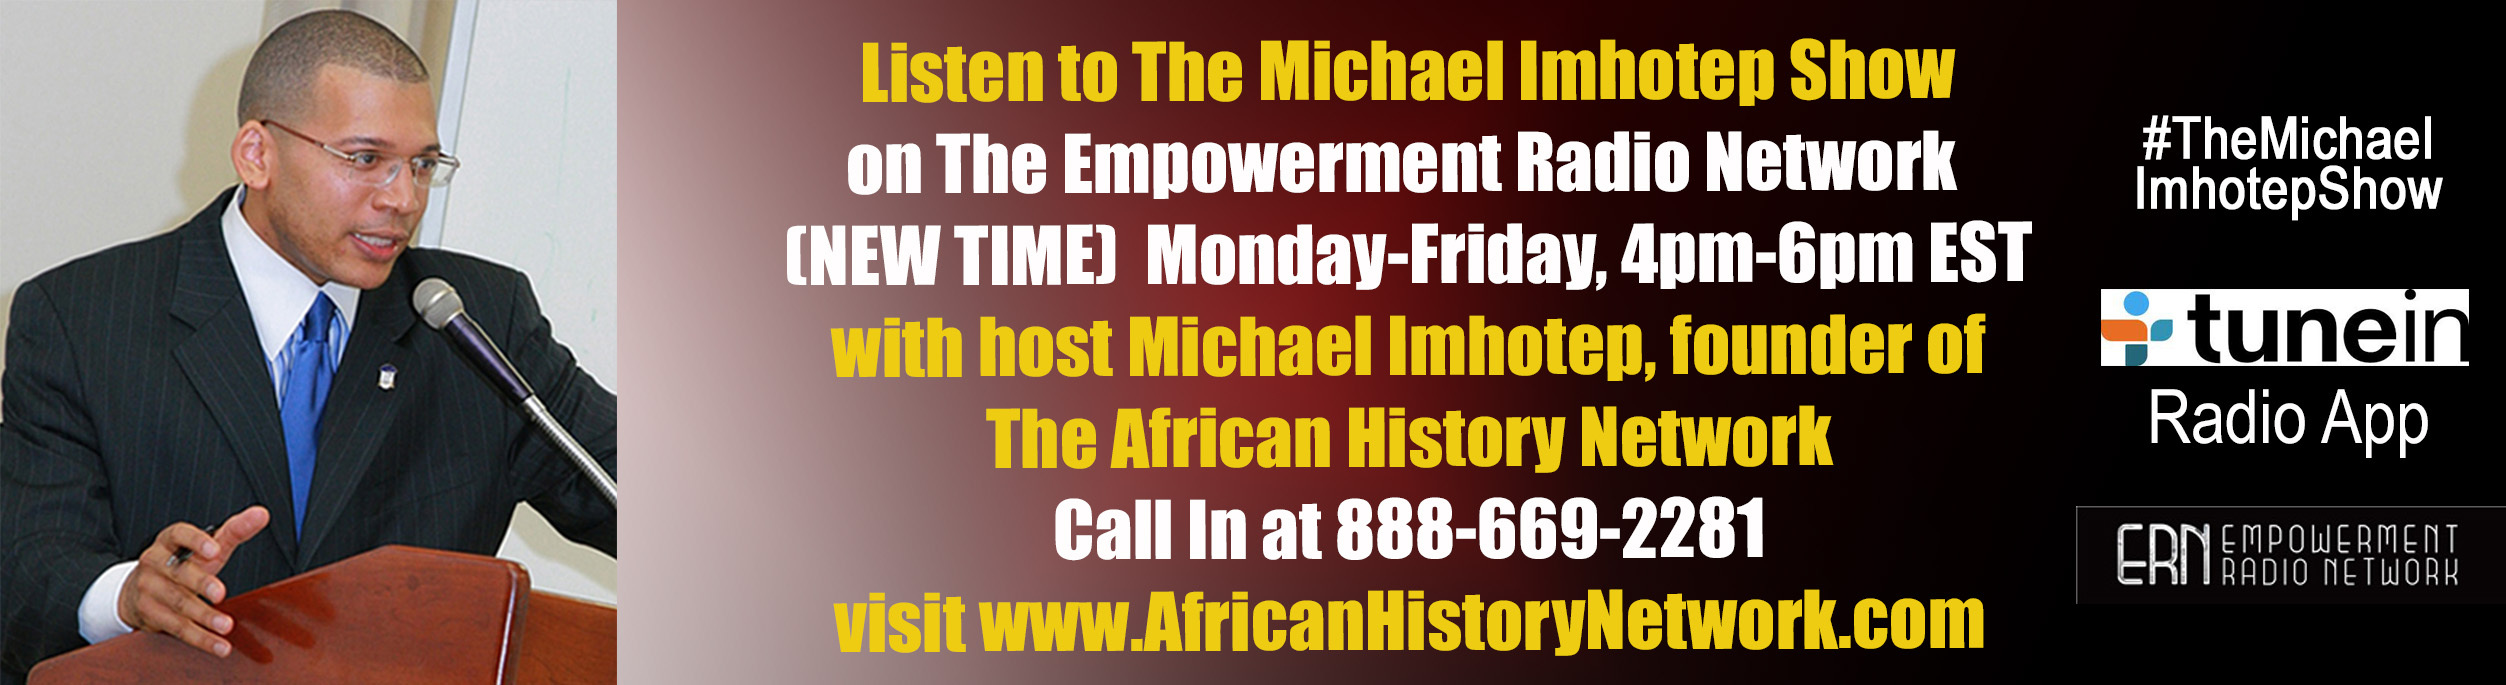 Michael_Imhotep_Show_-_Michael_Imhotep_-_ERN_-_7-11-16_Banner_V1